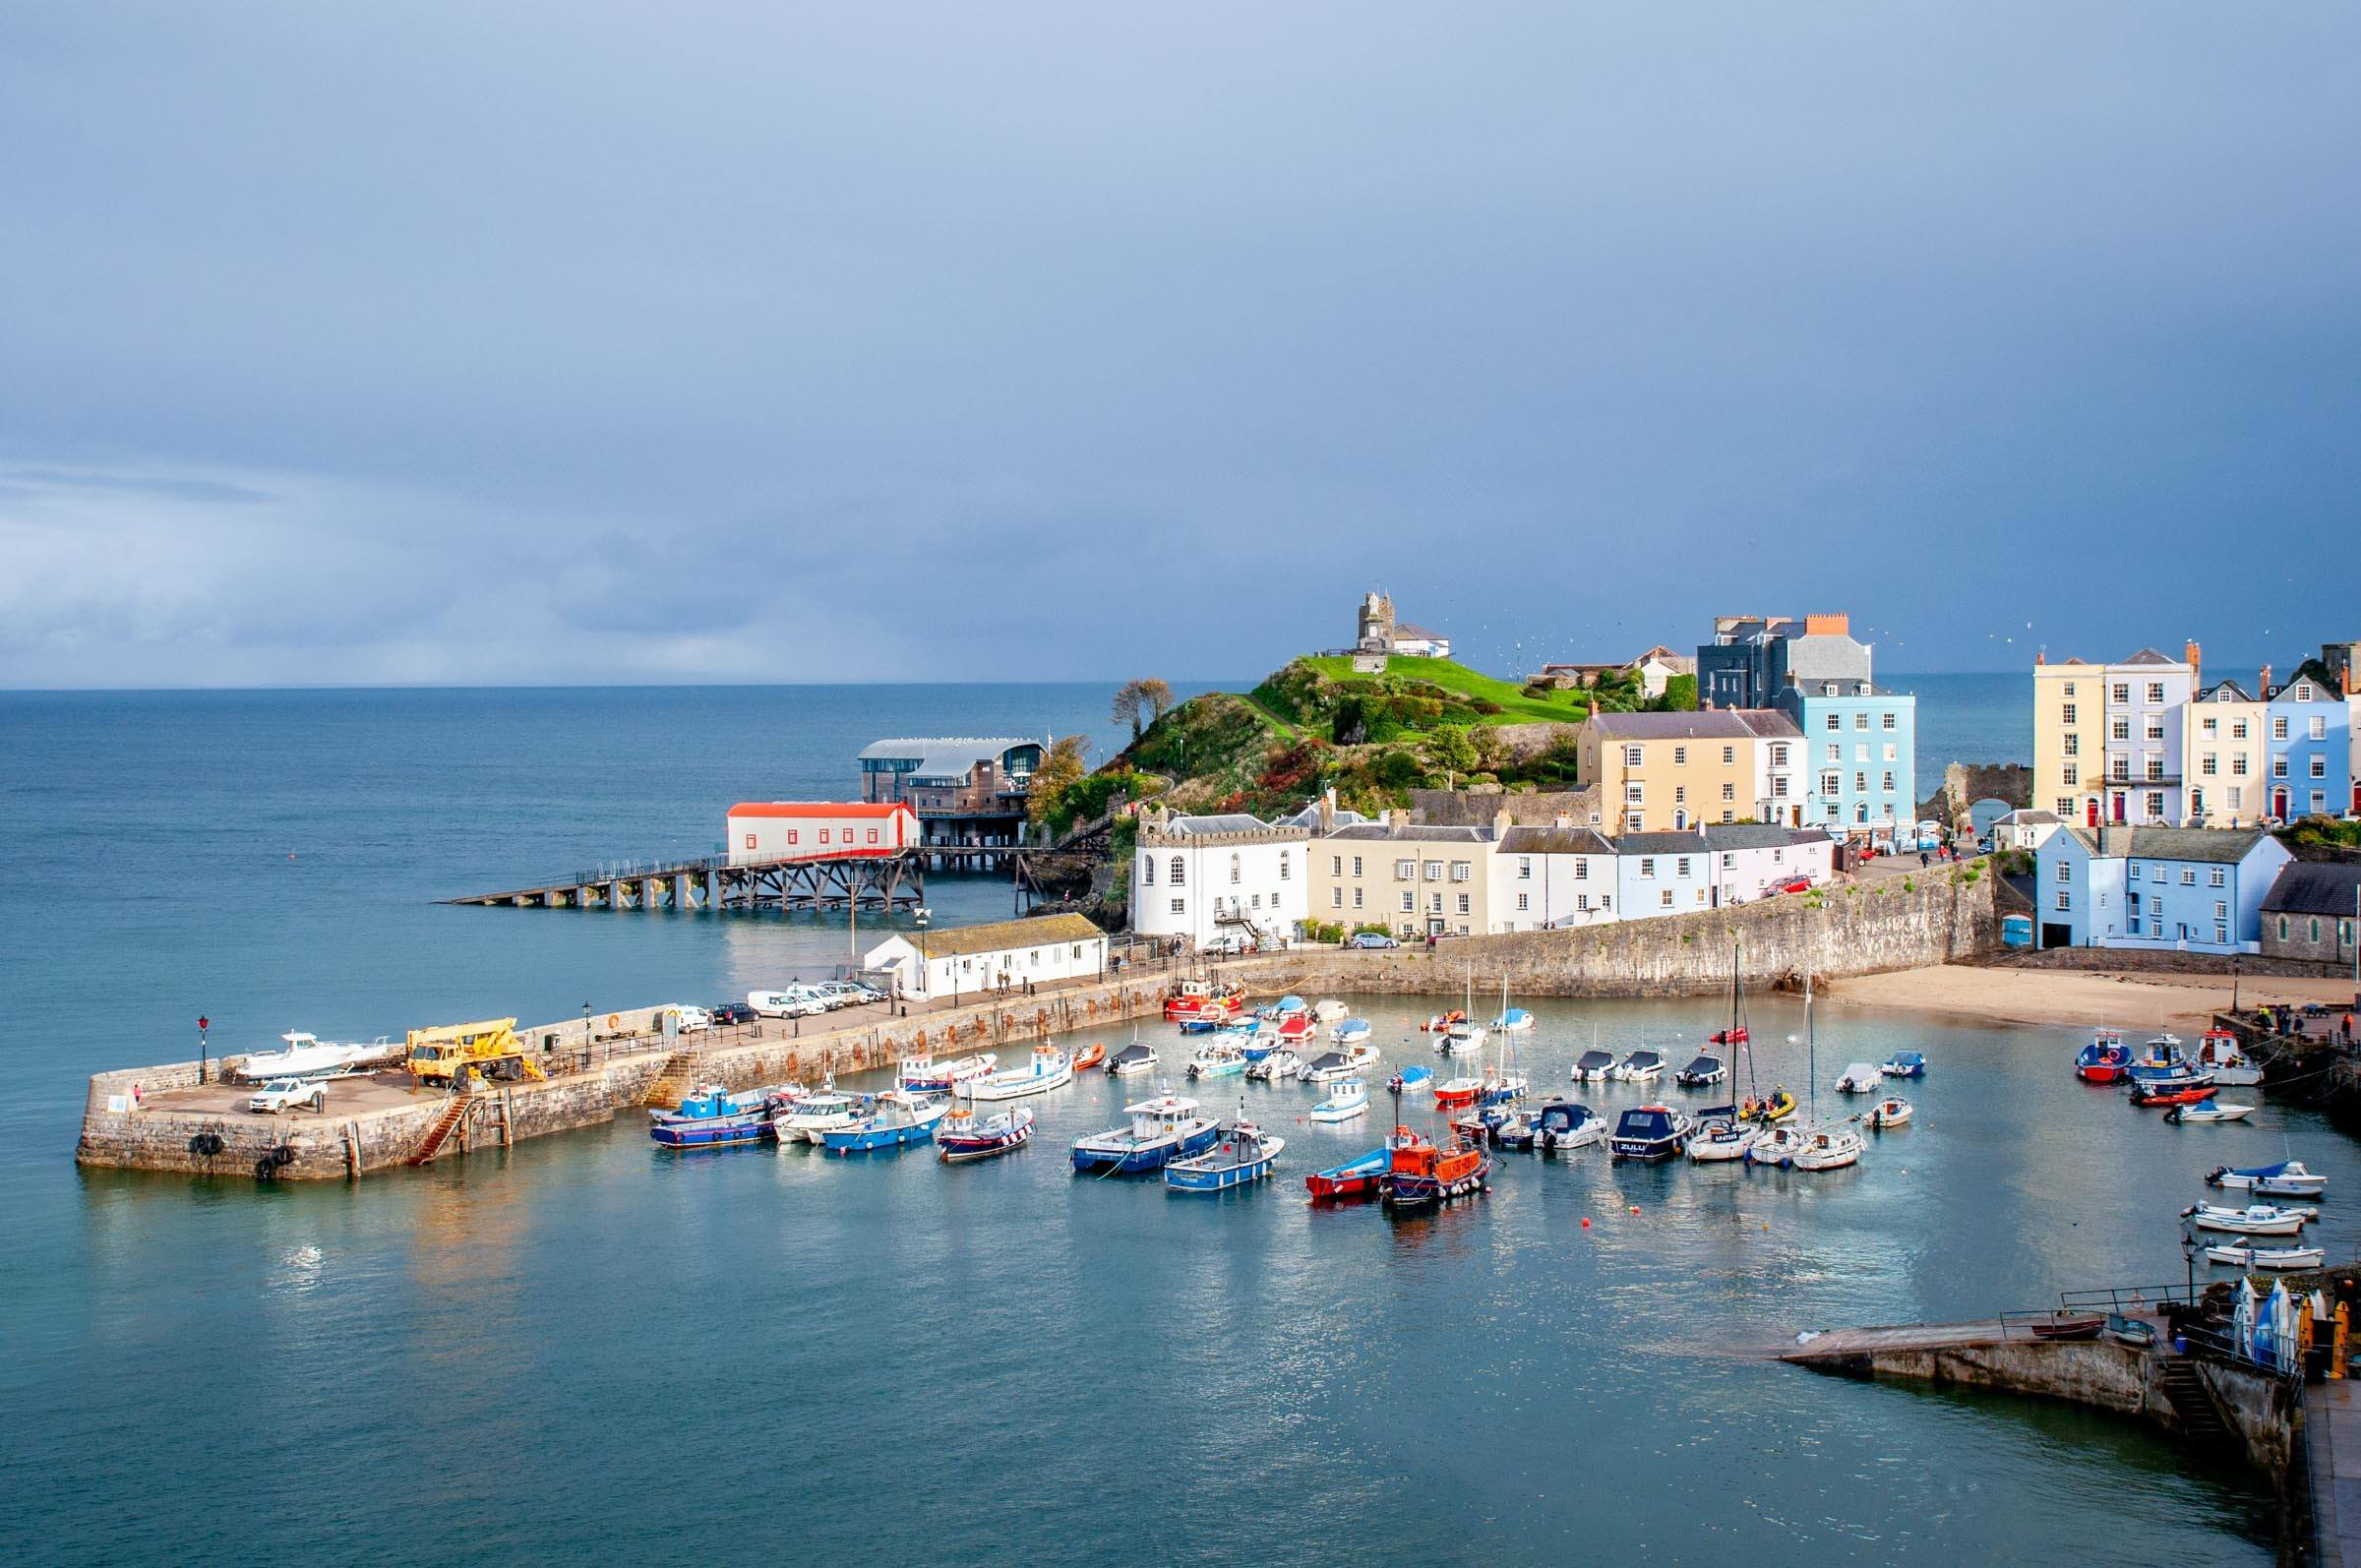 Boats and colorful houses in the harbor of Tenby, Wales